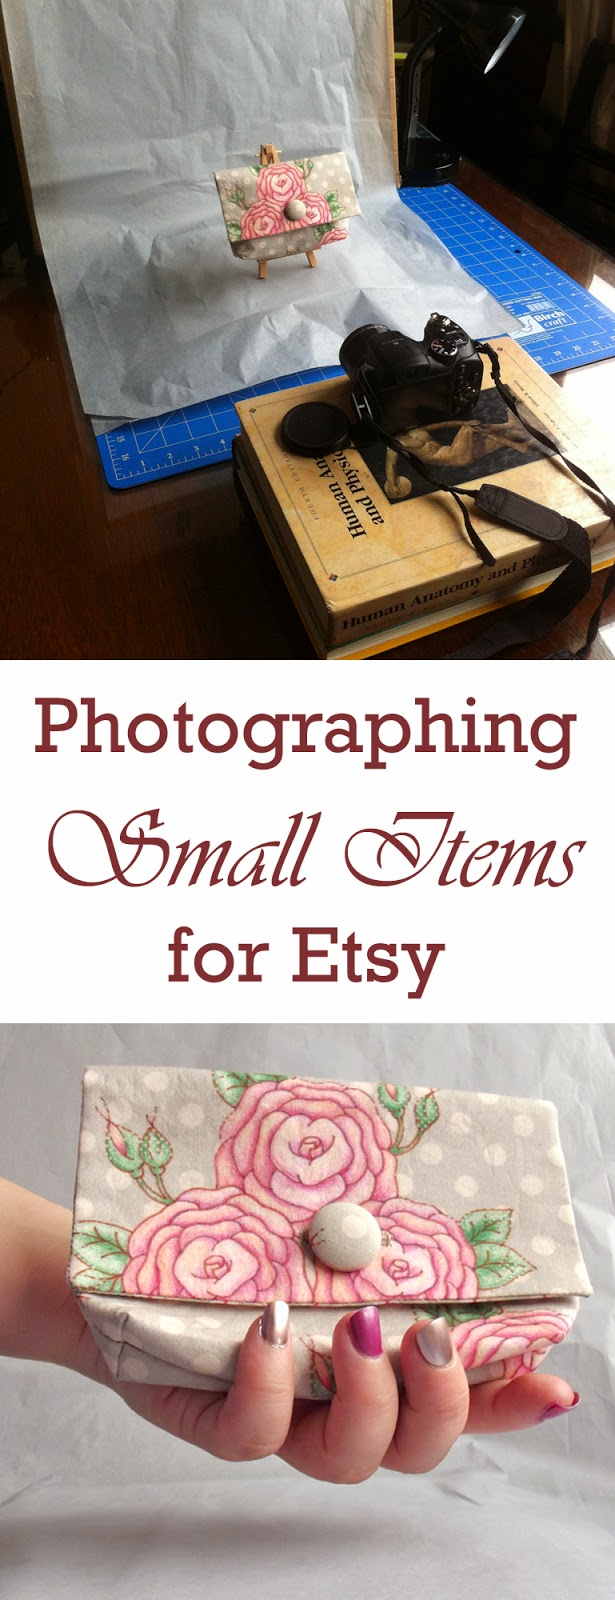 photography techniques for Etsy listings product photography